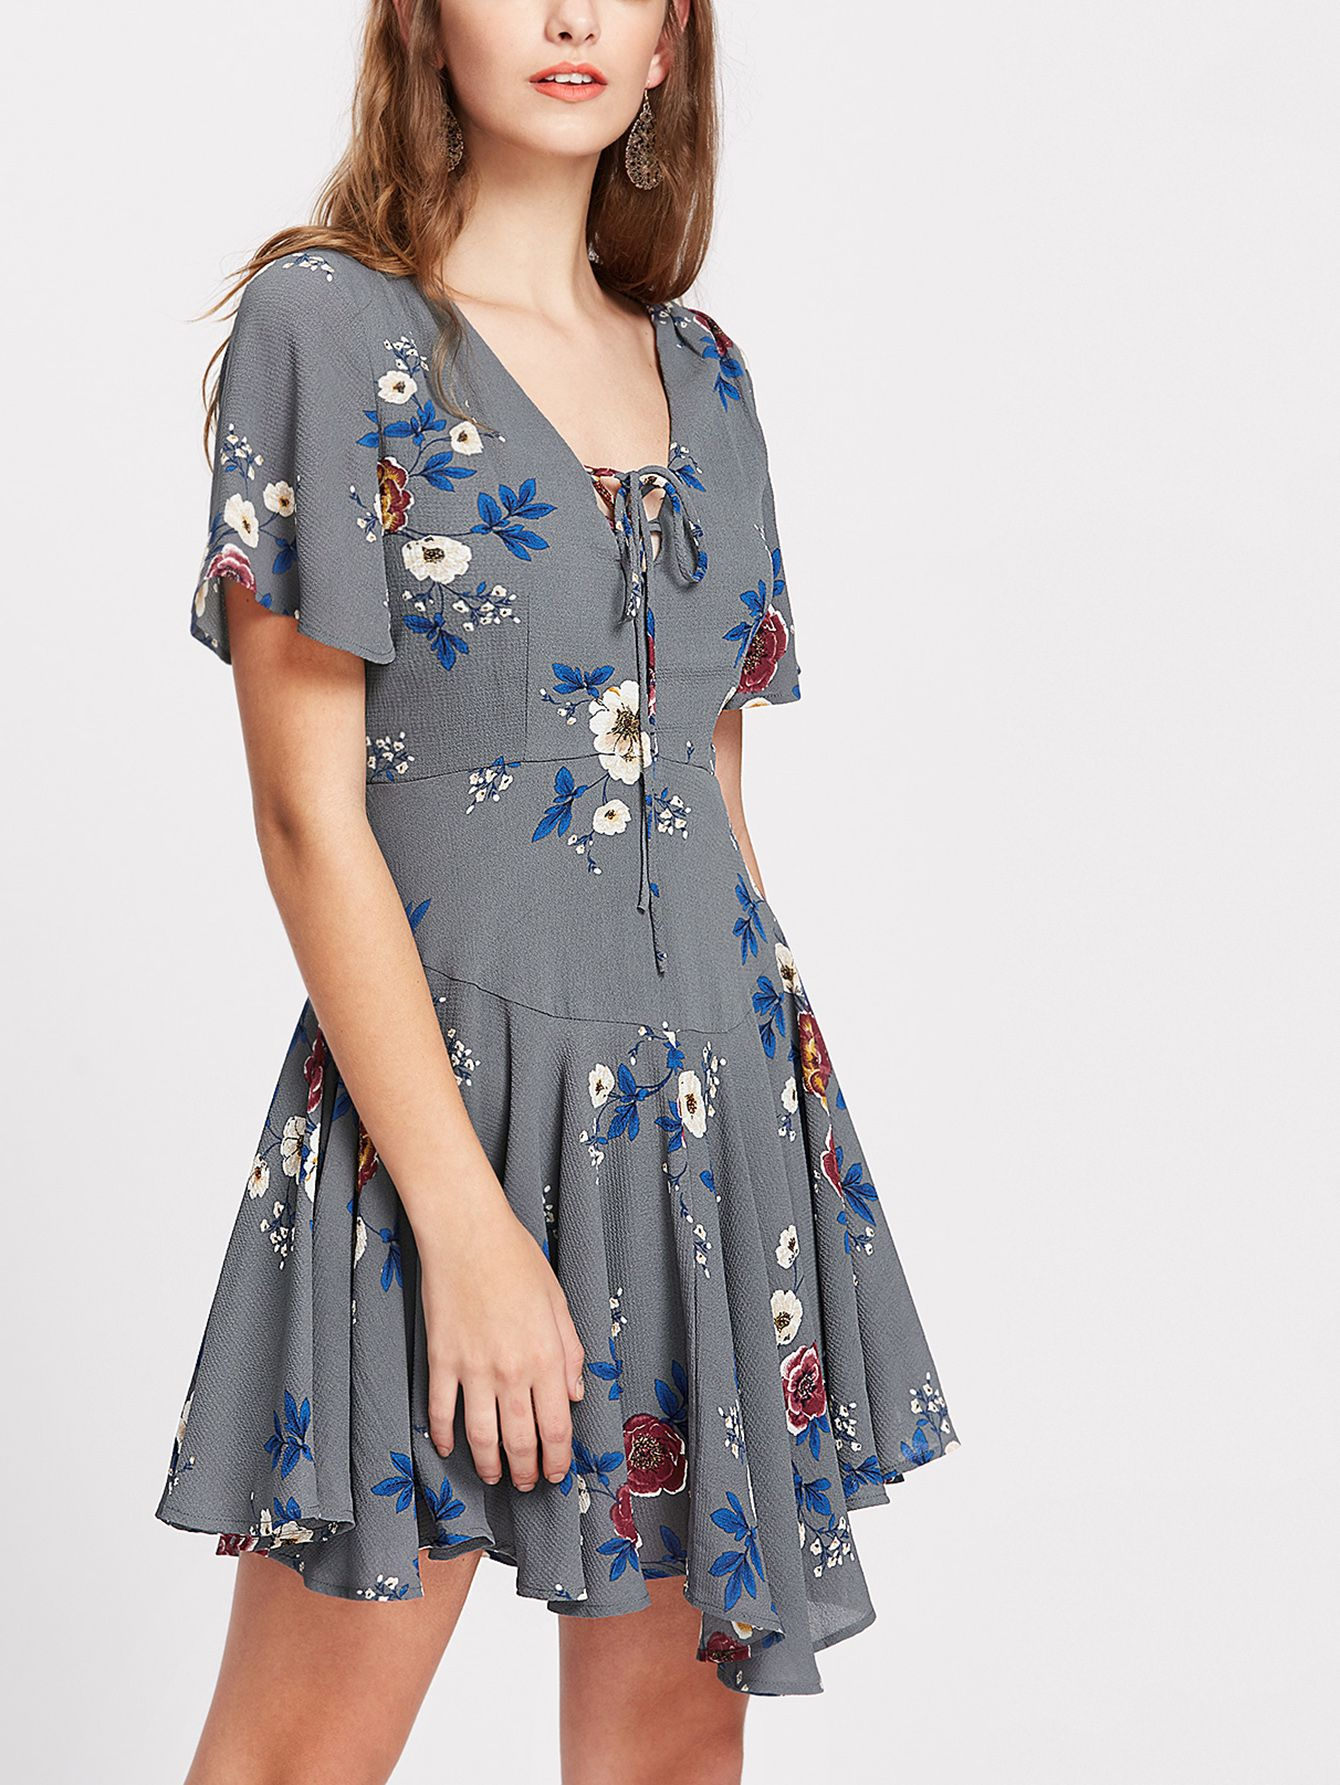 c9328dec181ae Shop Flower Print Lace Up Plunge Neck Paneled Flowy Dress online. SheIn  offers Flower Print Lace Up Plunge Neck Paneled Flowy Dress & more to fit  your ...